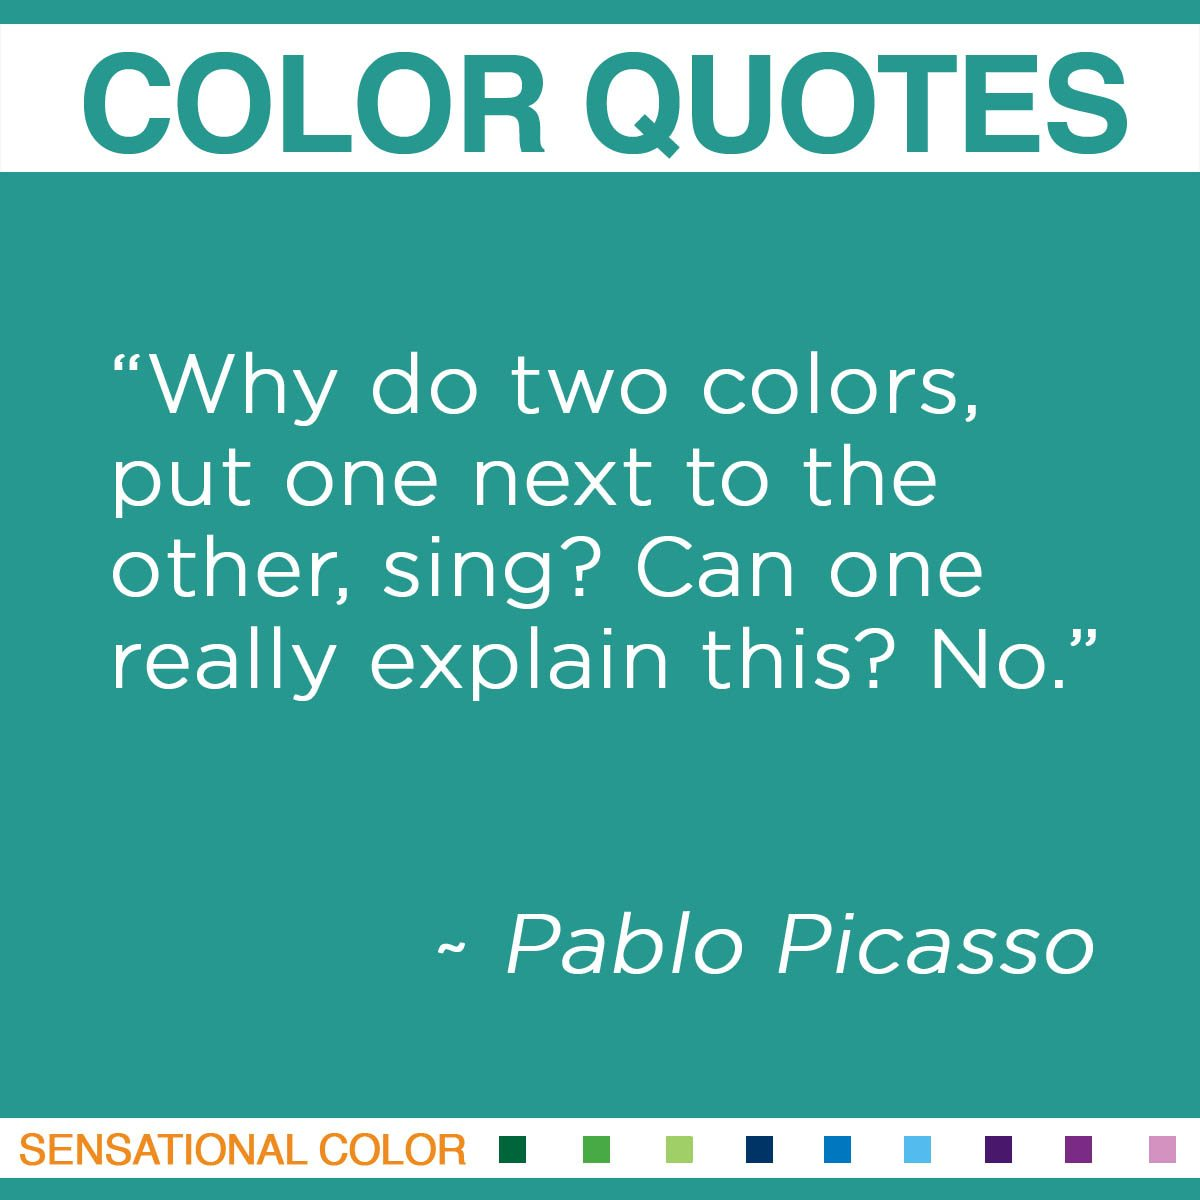 """Why do two colors, put one next to the other, sing? Can one really explain this? No."" - Pablo Picasso"